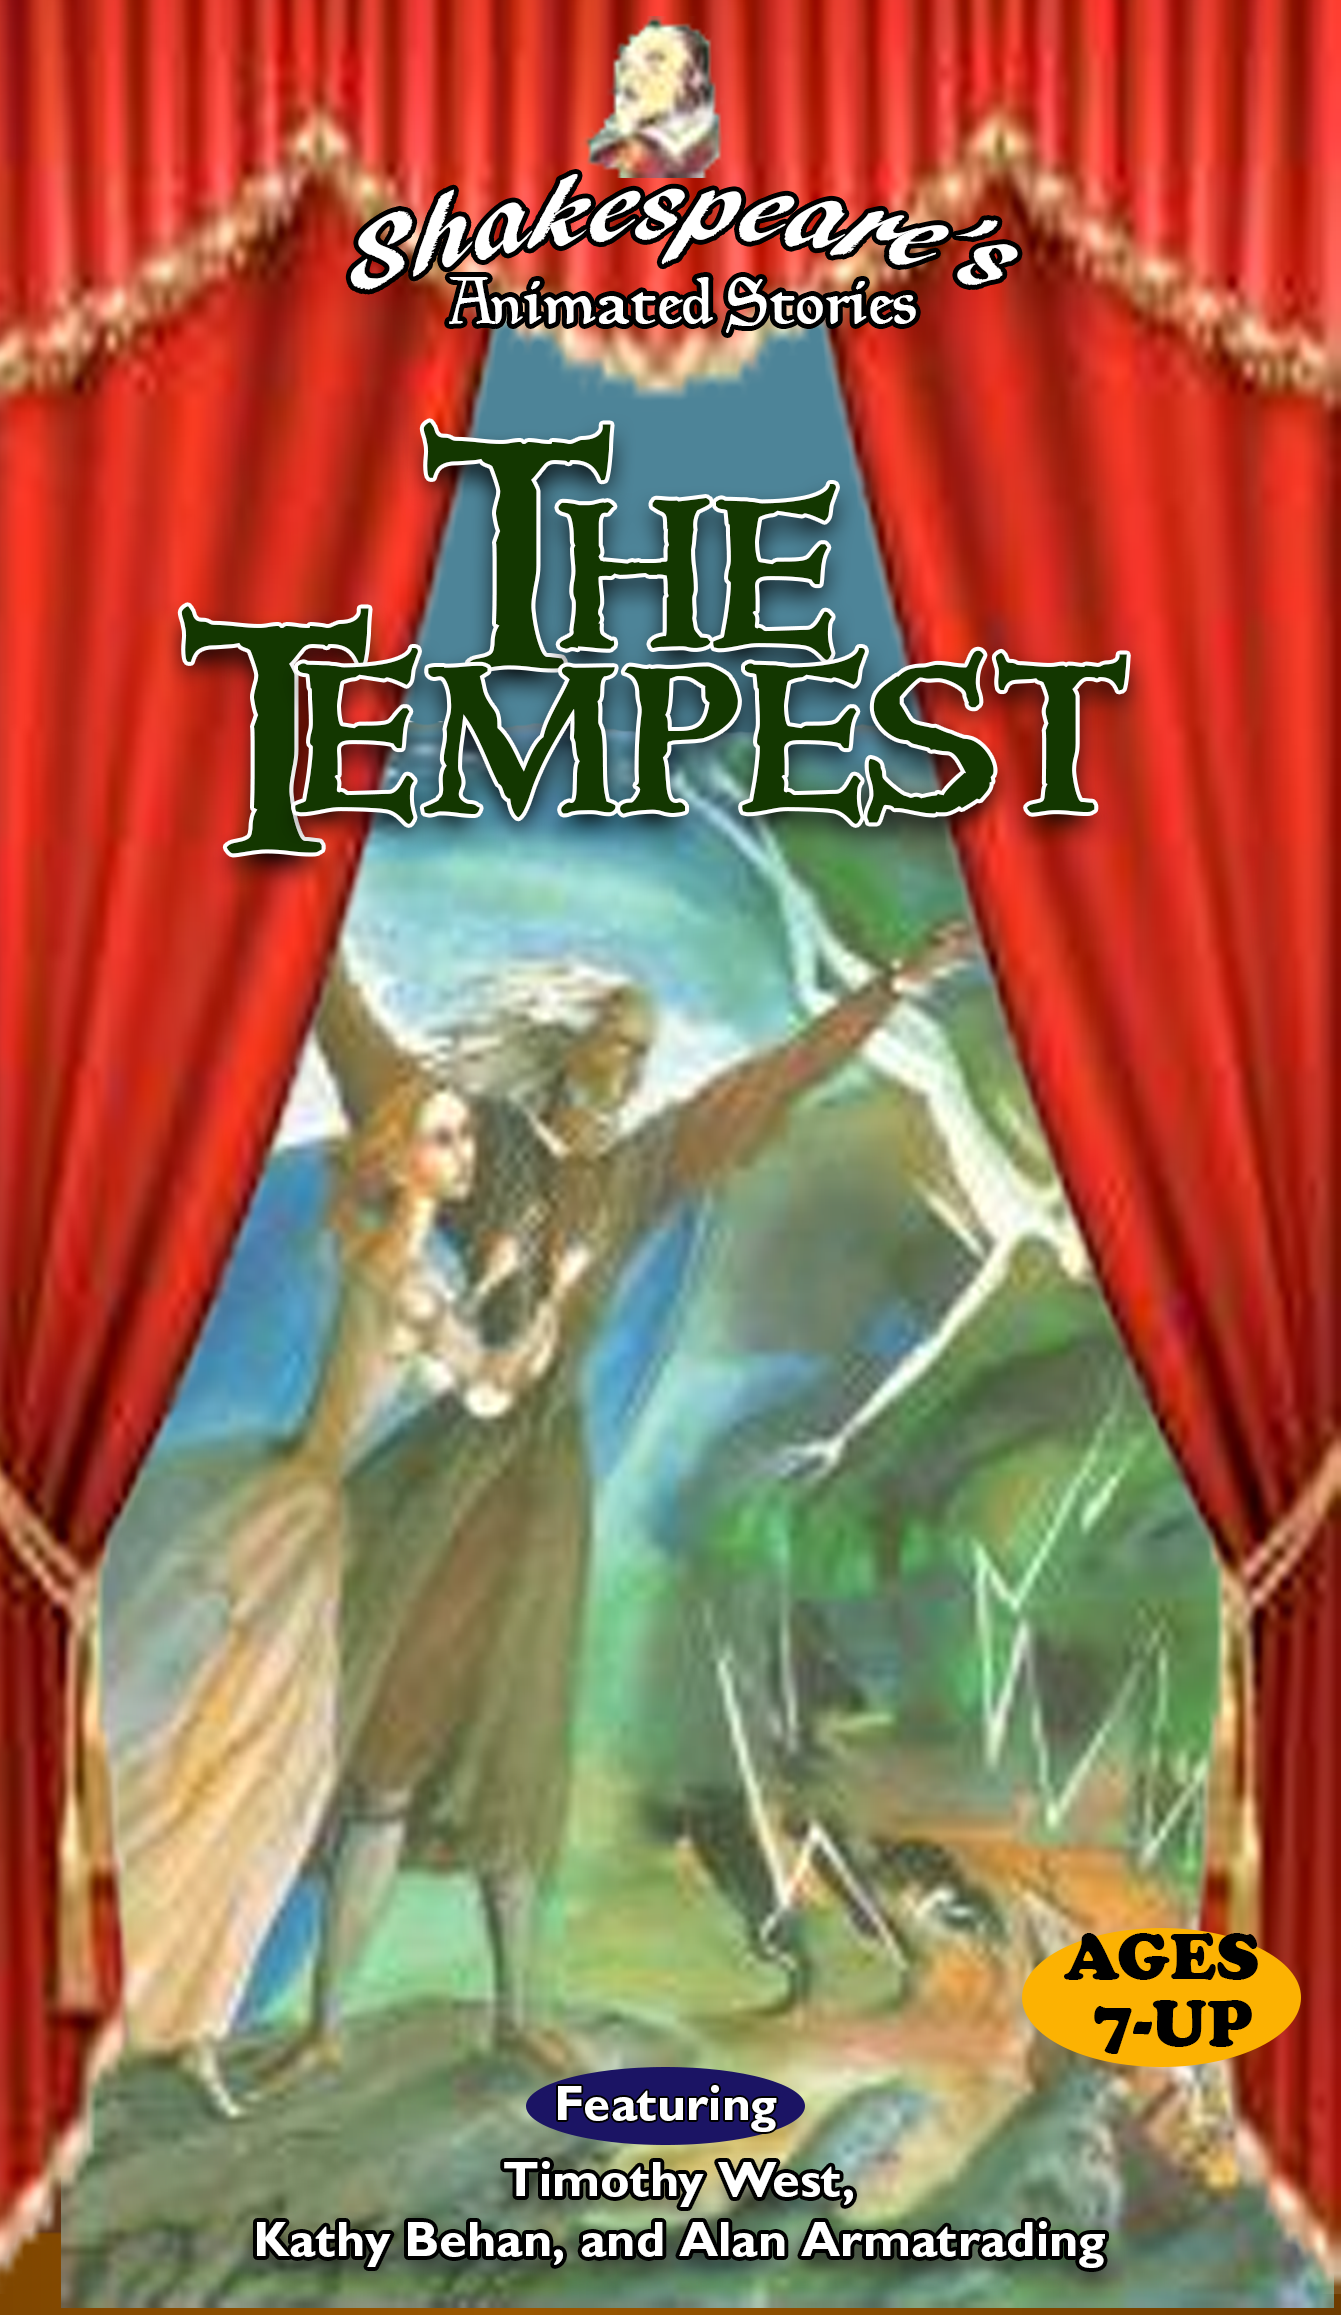 Shakespeare's Animated Stories: The Tempest (1997 VHS)